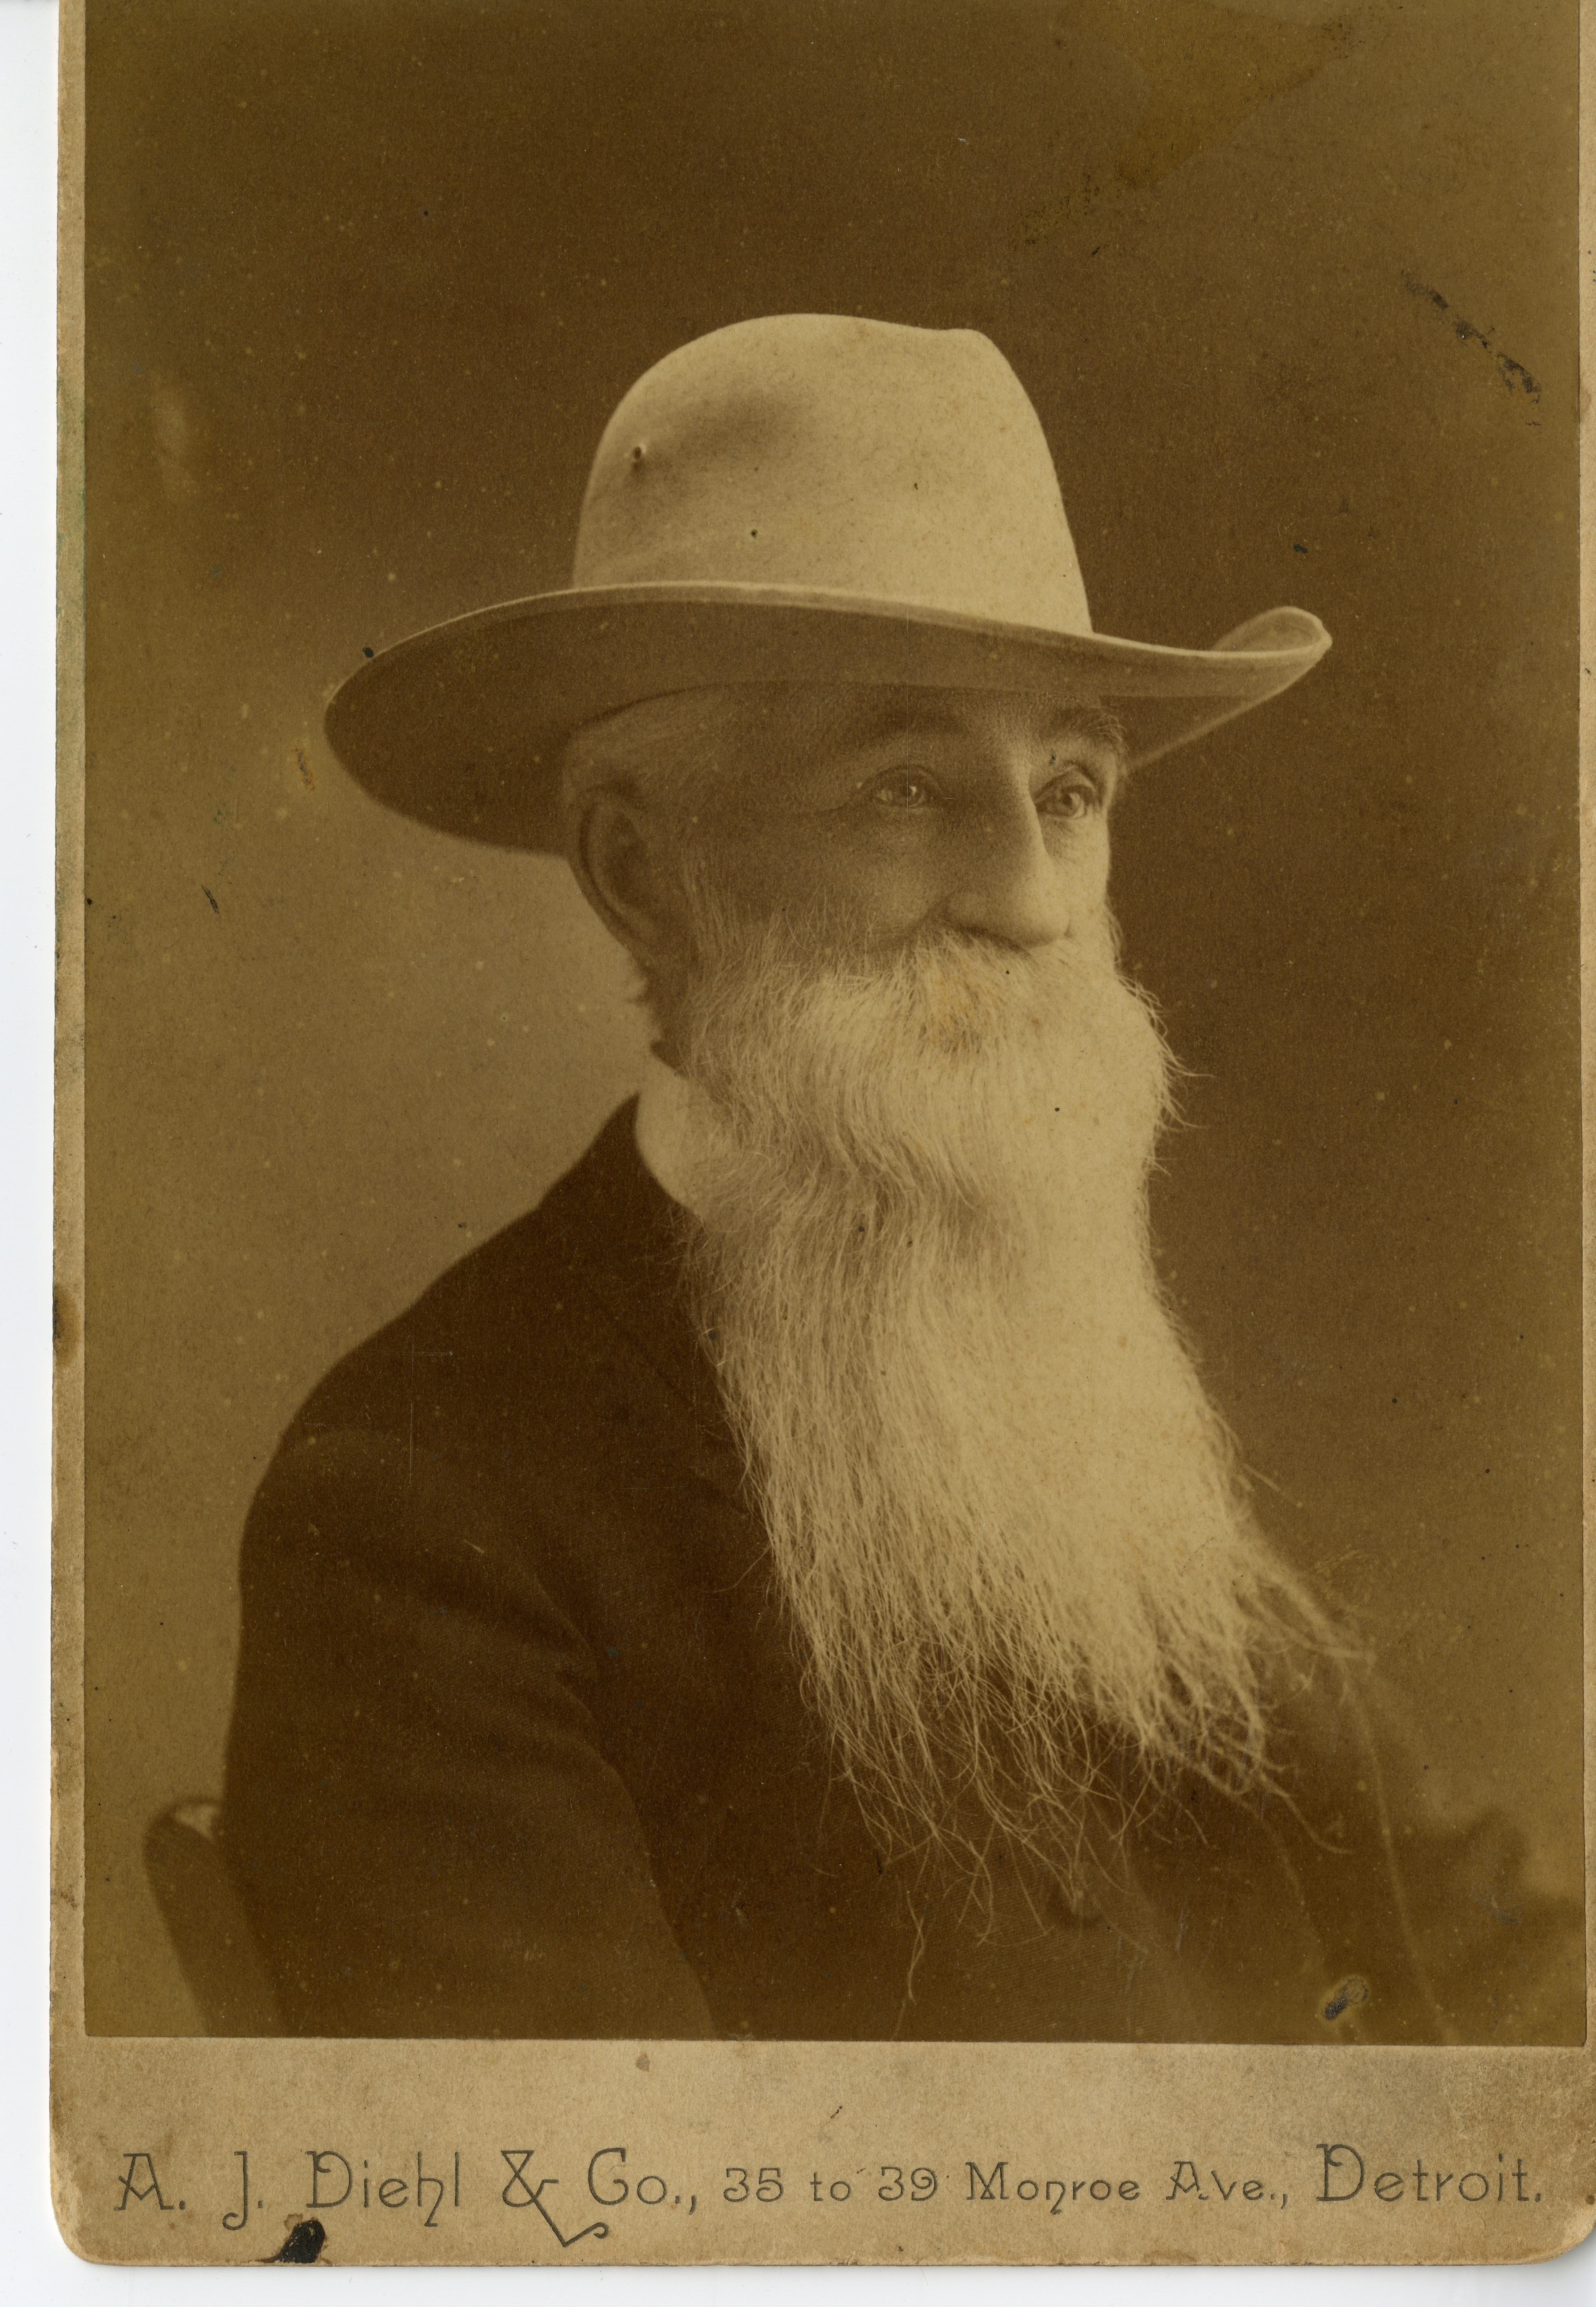 John C. Williams, circa 1890. The namesake of Williams Park in St. Petersburg, Williams and his wife Sarah Graven Judge, helped bring the Orange Belt Railroad to St. Petersburg, leading directly to the city's incorporation. John Williams passed away in 1892, after which Sarah Judge married Capt. James A. Armistead in 1894.